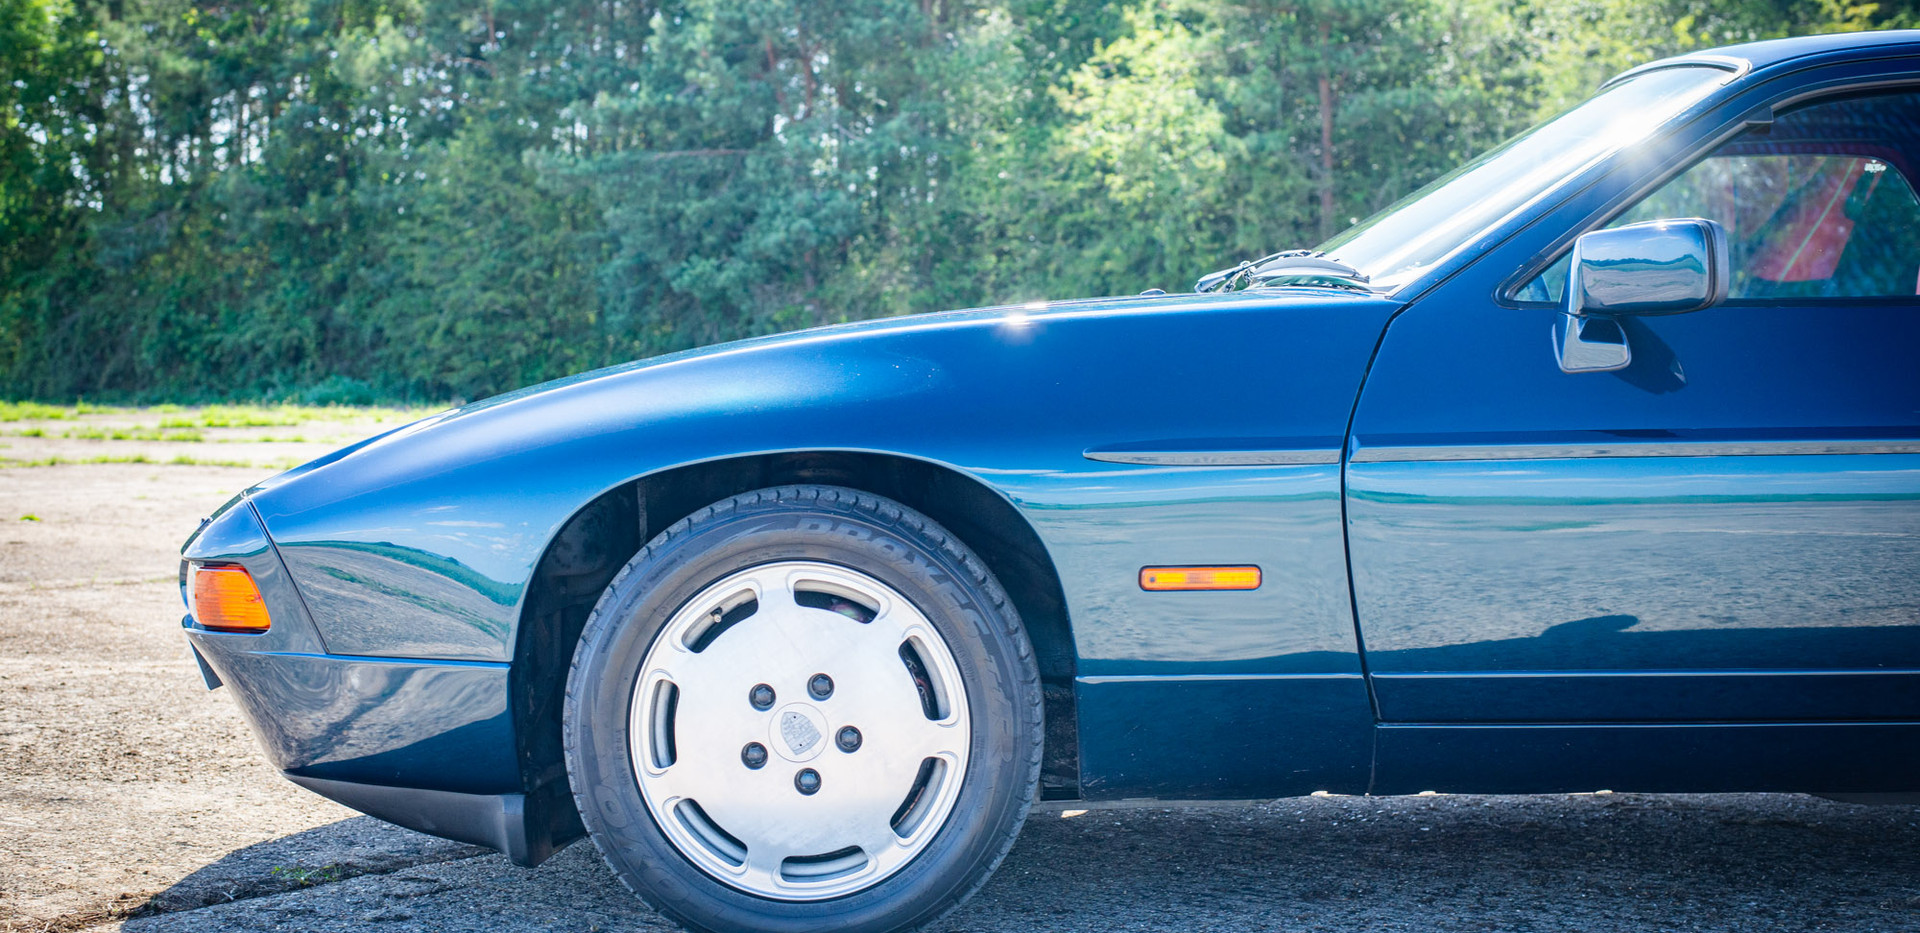 Porsche_928_ForSale Uk London-11.jpg